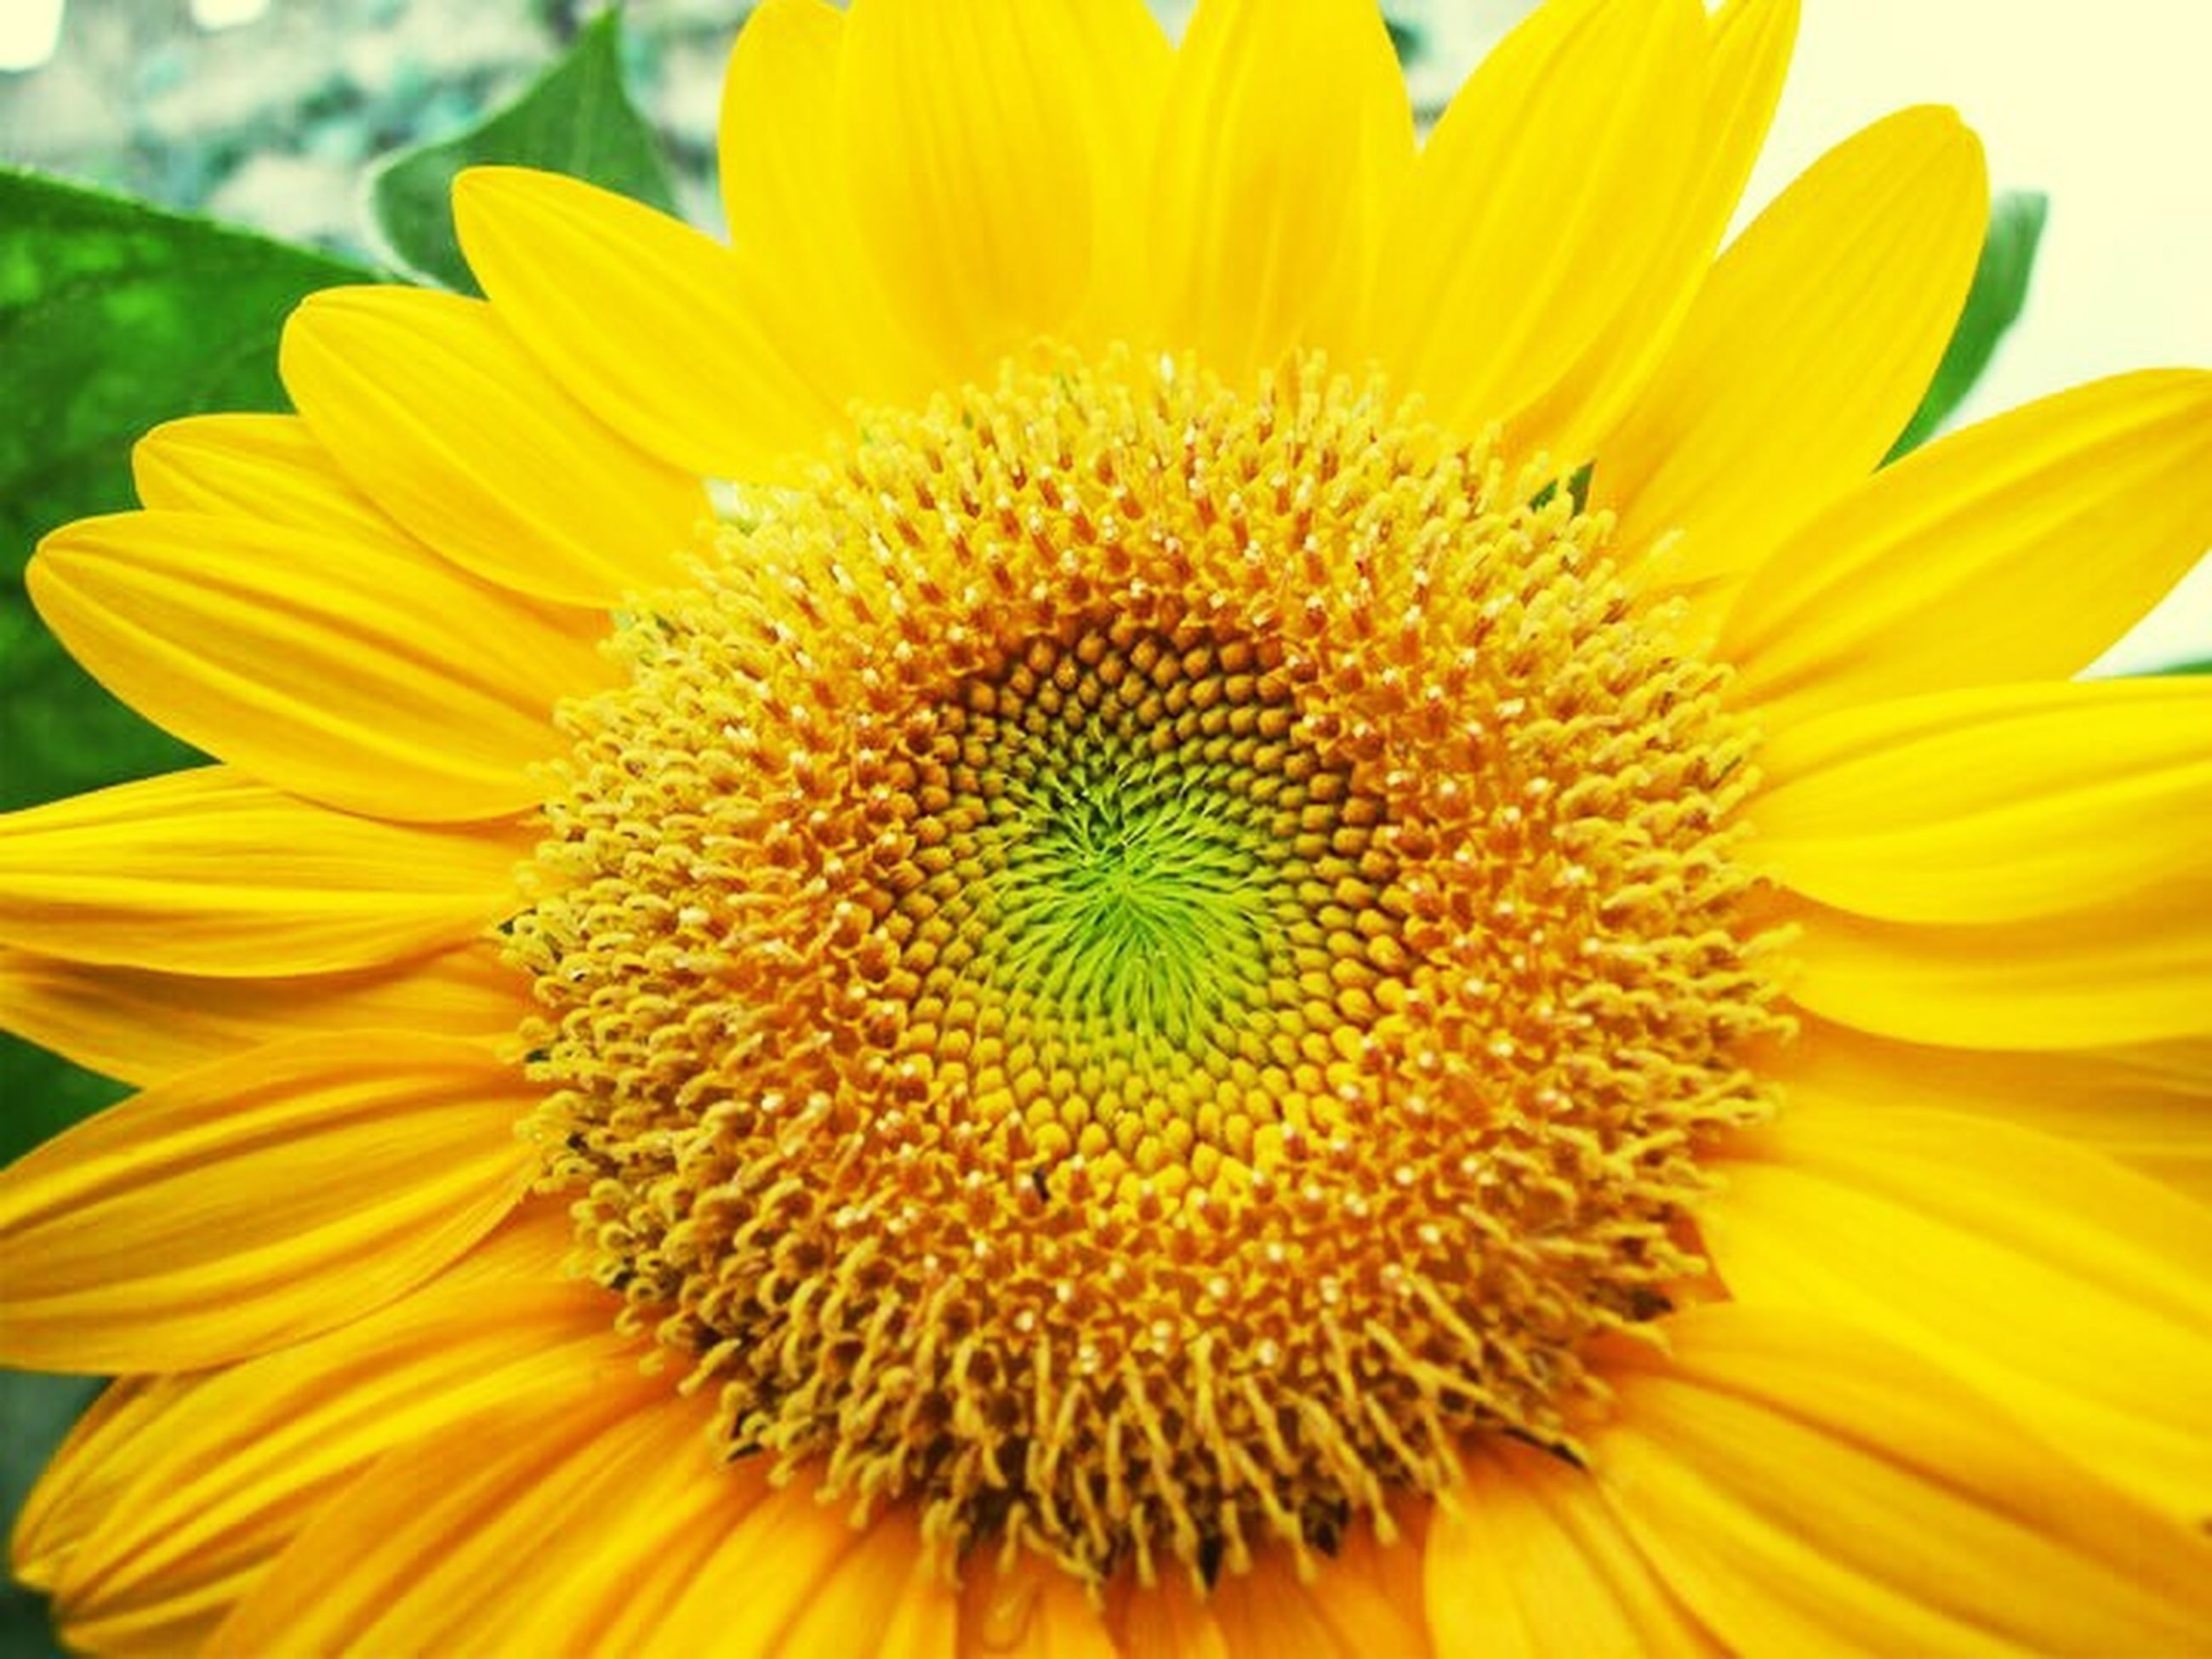 flower, petal, yellow, freshness, flower head, fragility, growth, beauty in nature, close-up, pollen, sunflower, blooming, nature, single flower, focus on foreground, plant, in bloom, outdoors, no people, day